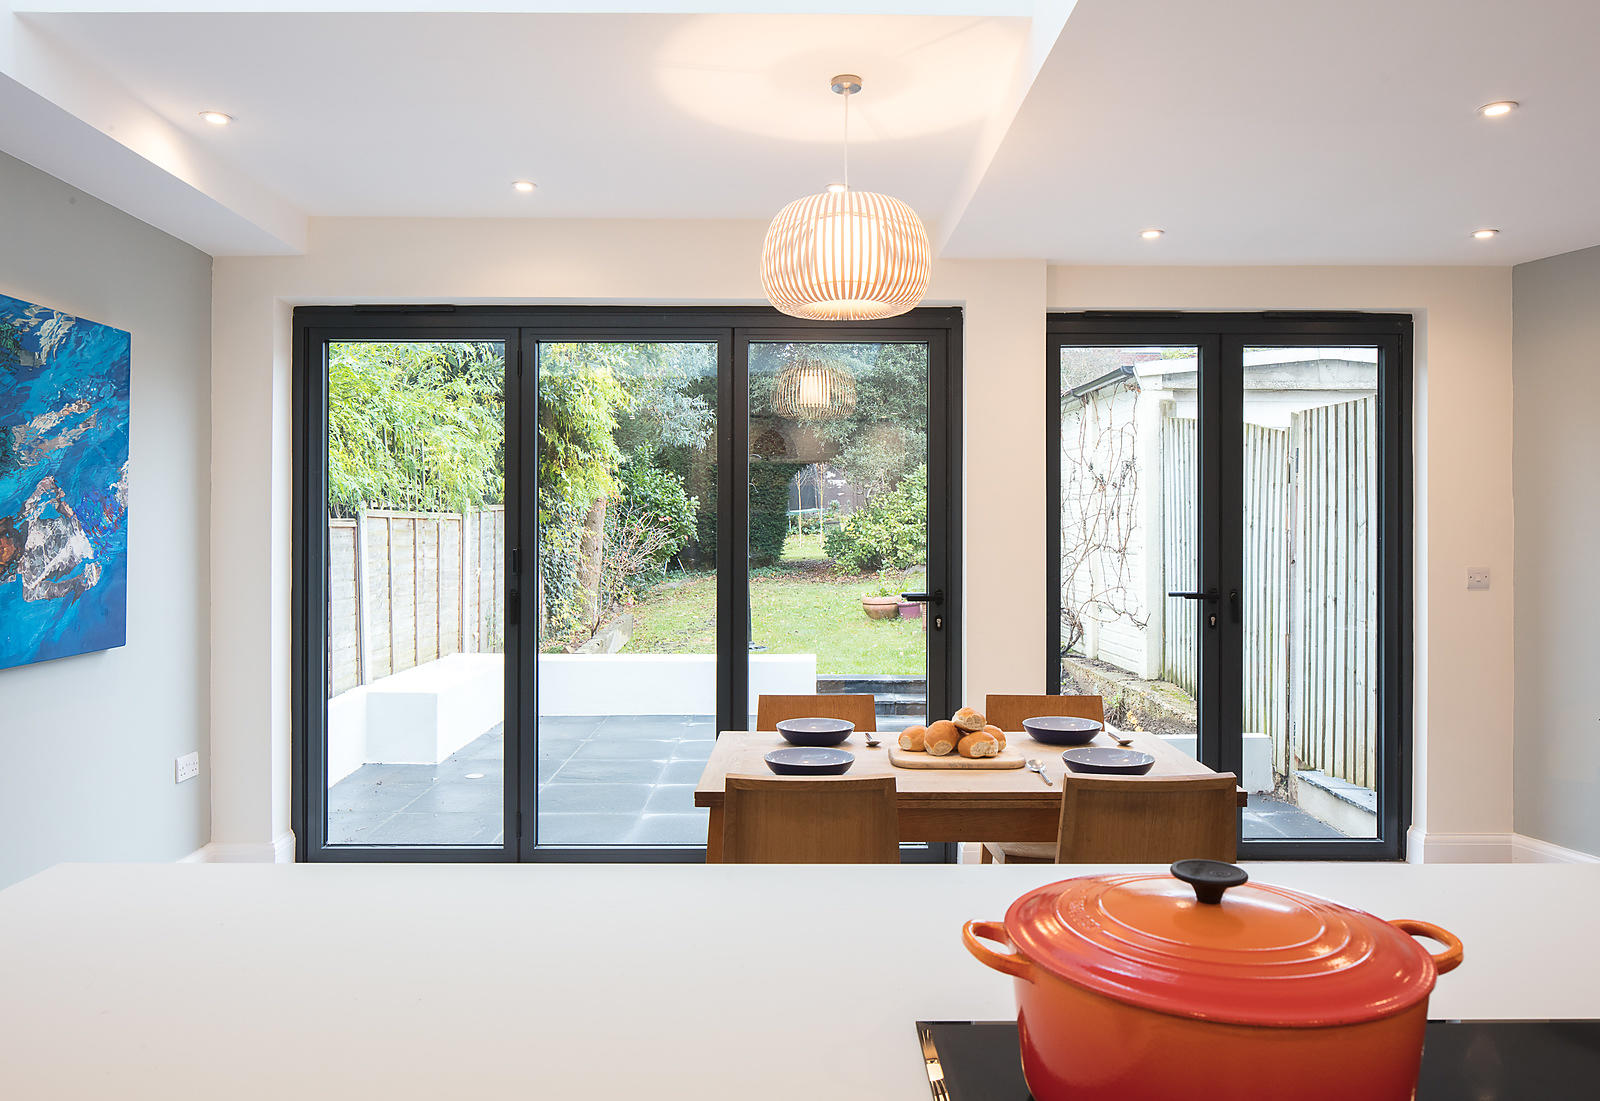 Interior photographs of house extension by Nicholas Jamieson